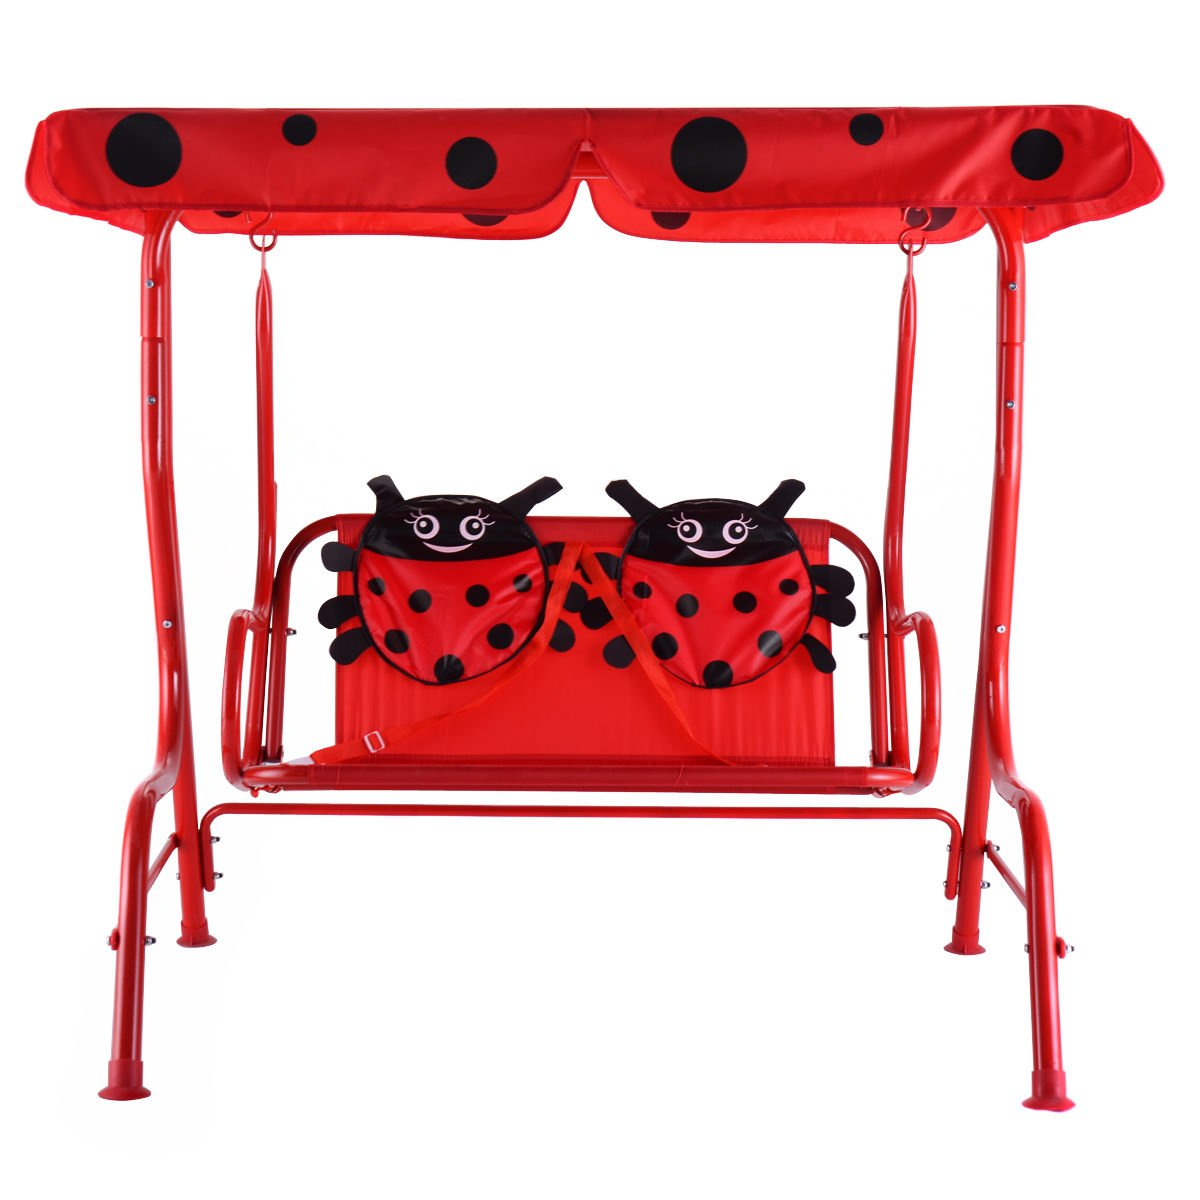 Heaven Tvcz Kids Patio Swing Chair Children Porch Bench Canopy 2 Person Red